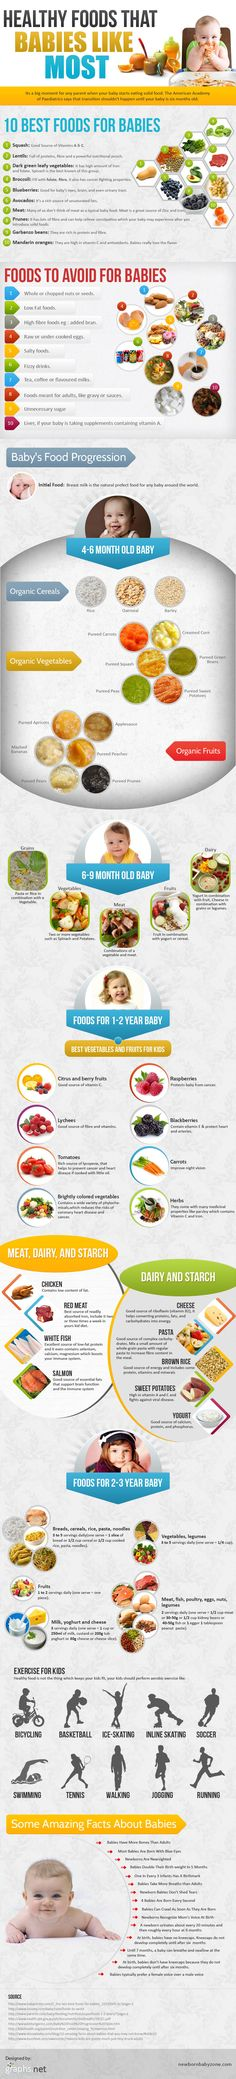 top 10 foods to try with babies